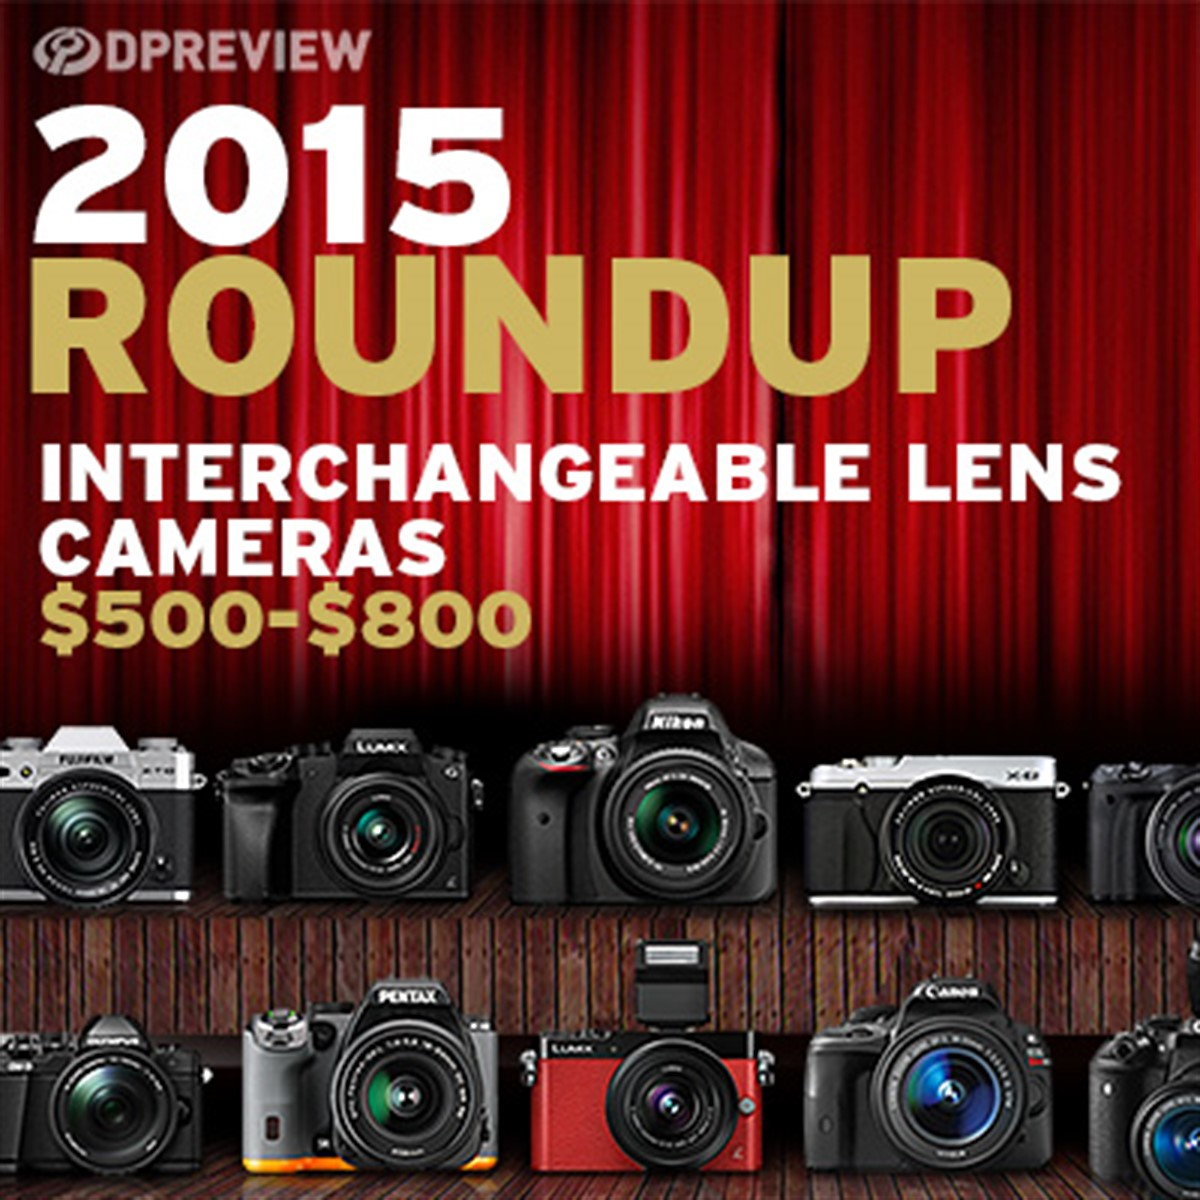 2015 Roundup Interchangeable Lens Cameras 500 800 Digital Olympus Om D E M10 Mark Iii Kit 14 42mm F 35 56 Ez Silver Photography Review